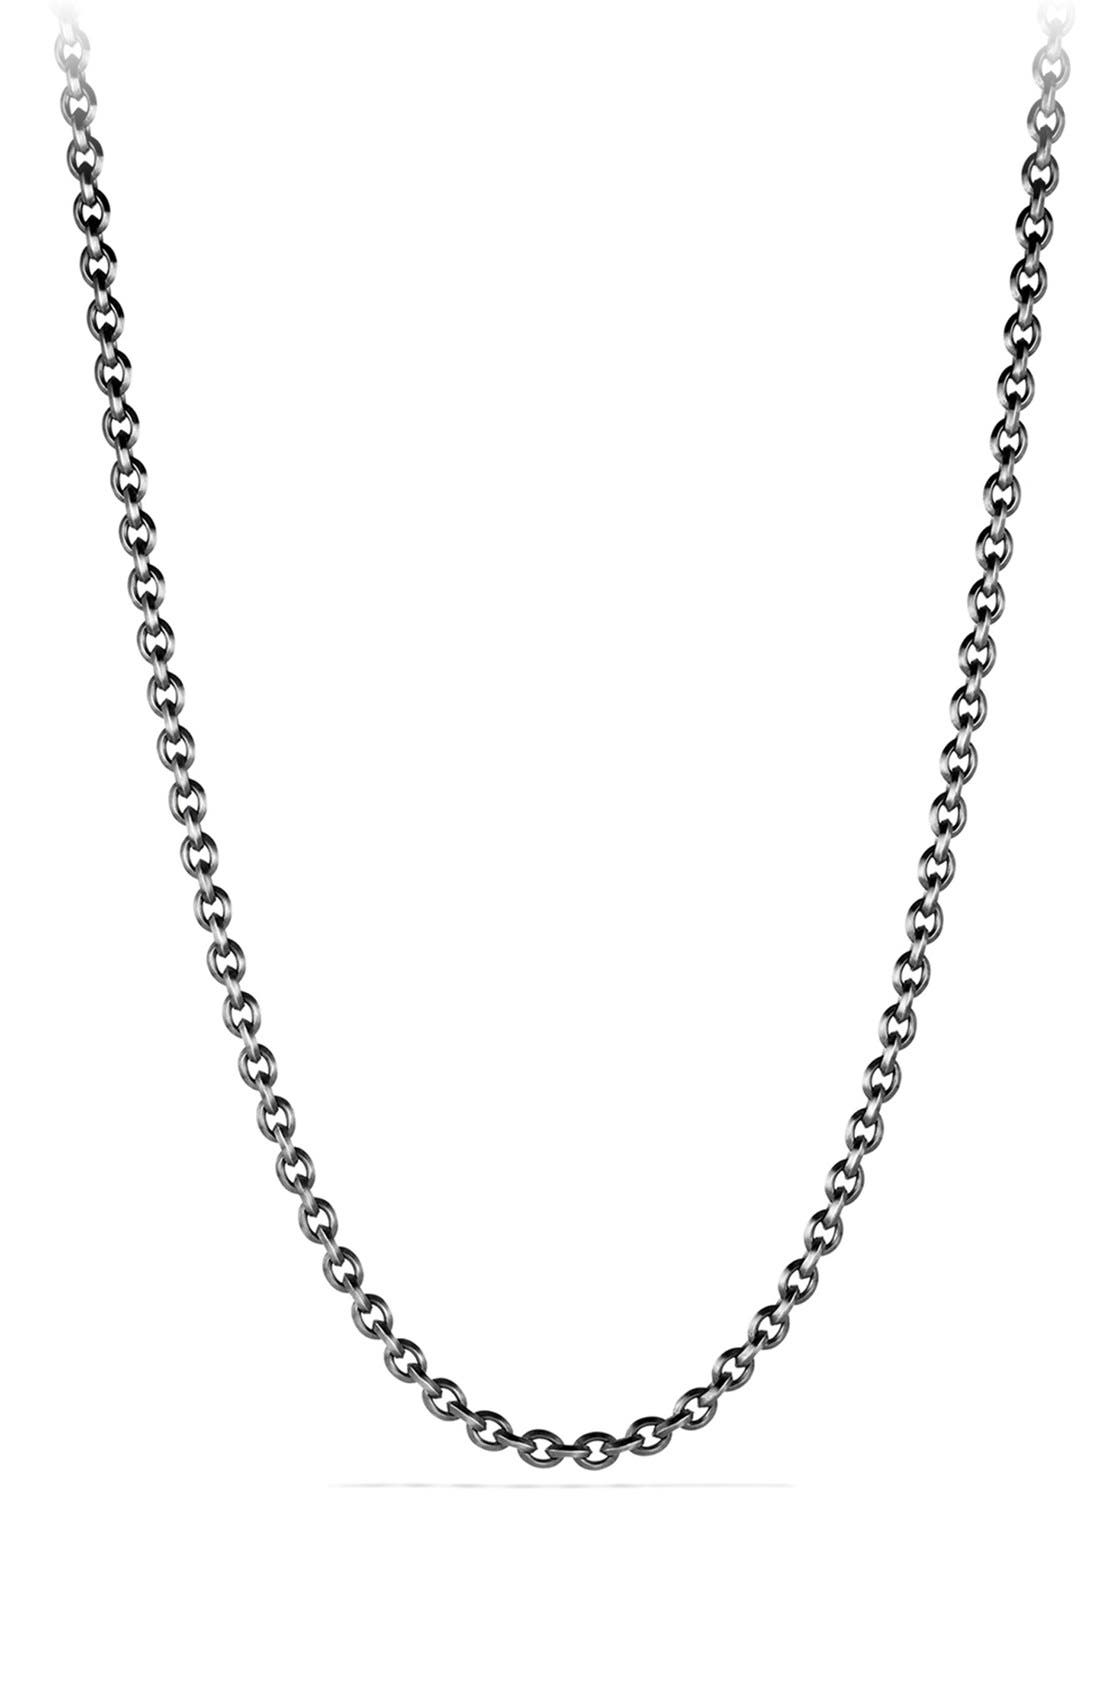 DAVID YURMAN Knife Edge Chain Necklace